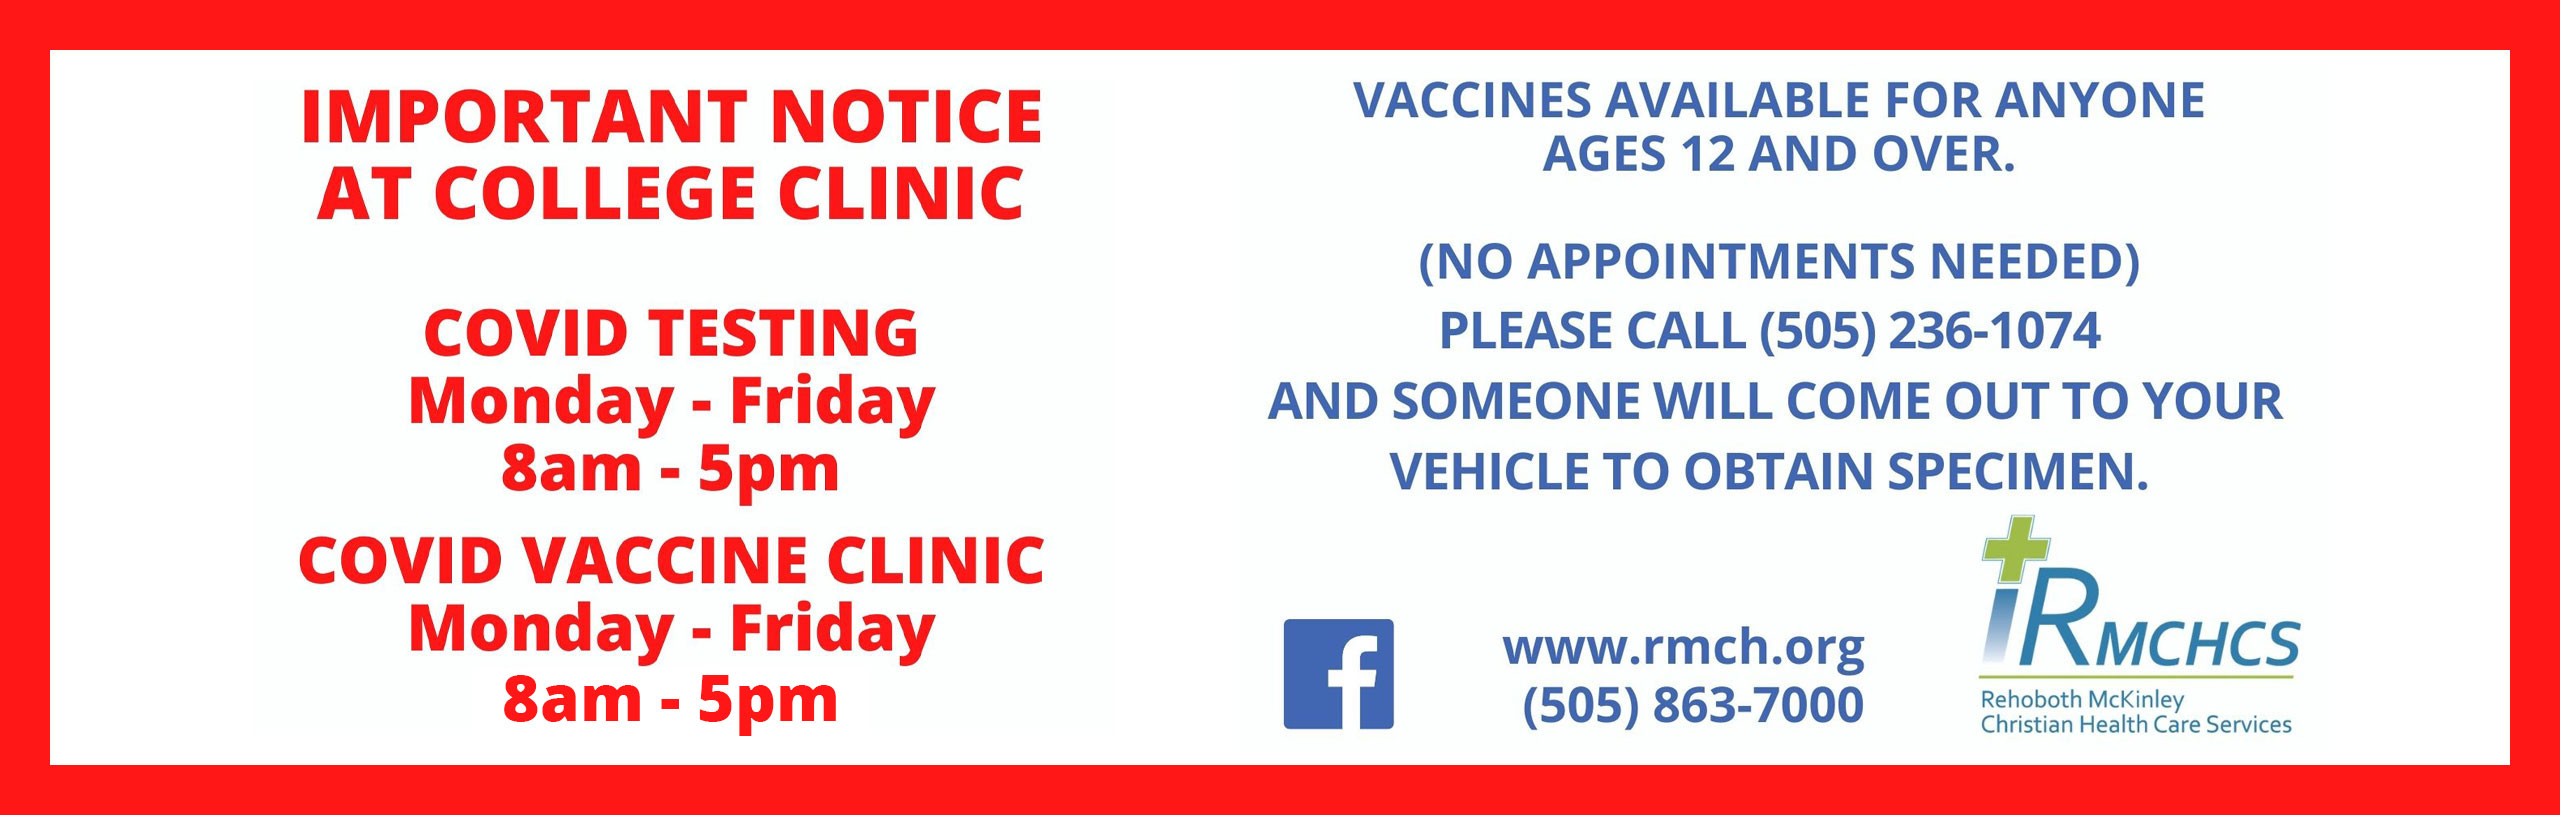 Important Notice at College Clinic  Covid testing Monday - Friday 8am - 5pm Covid Vaccine Clinic Monday - Friday 8am - 5pm  Vaccine Available for anyone ages 12 and over.  (No Appointments needed) Please call (505)236-1074 and someone will come out to your vehicle to obtain specimen.